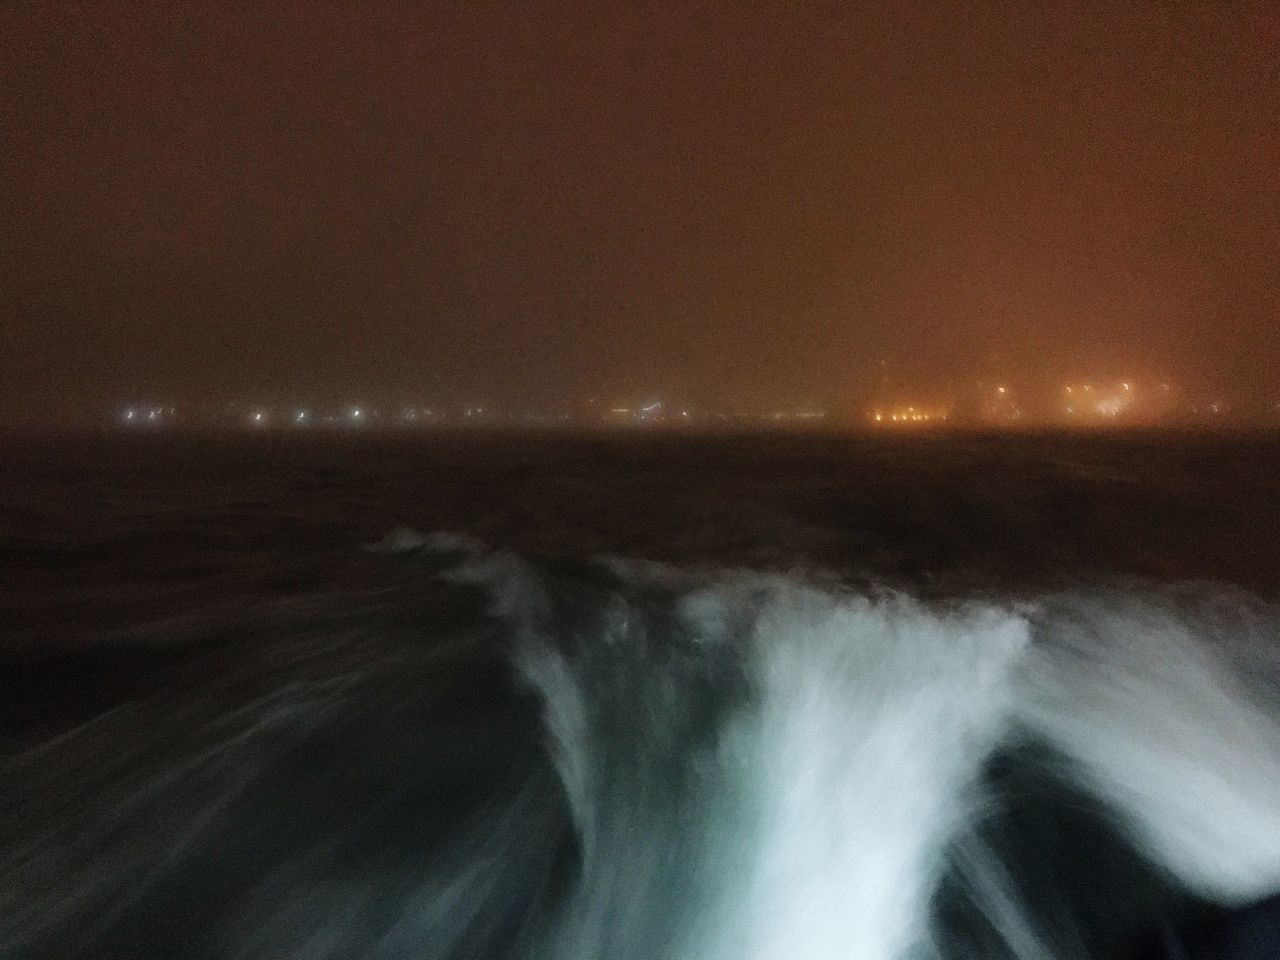 nature, sea, motion, beauty in nature, blurred motion, tranquility, scenics, water, long exposure, no people, tranquil scene, outdoors, night, sky, wave, illuminated